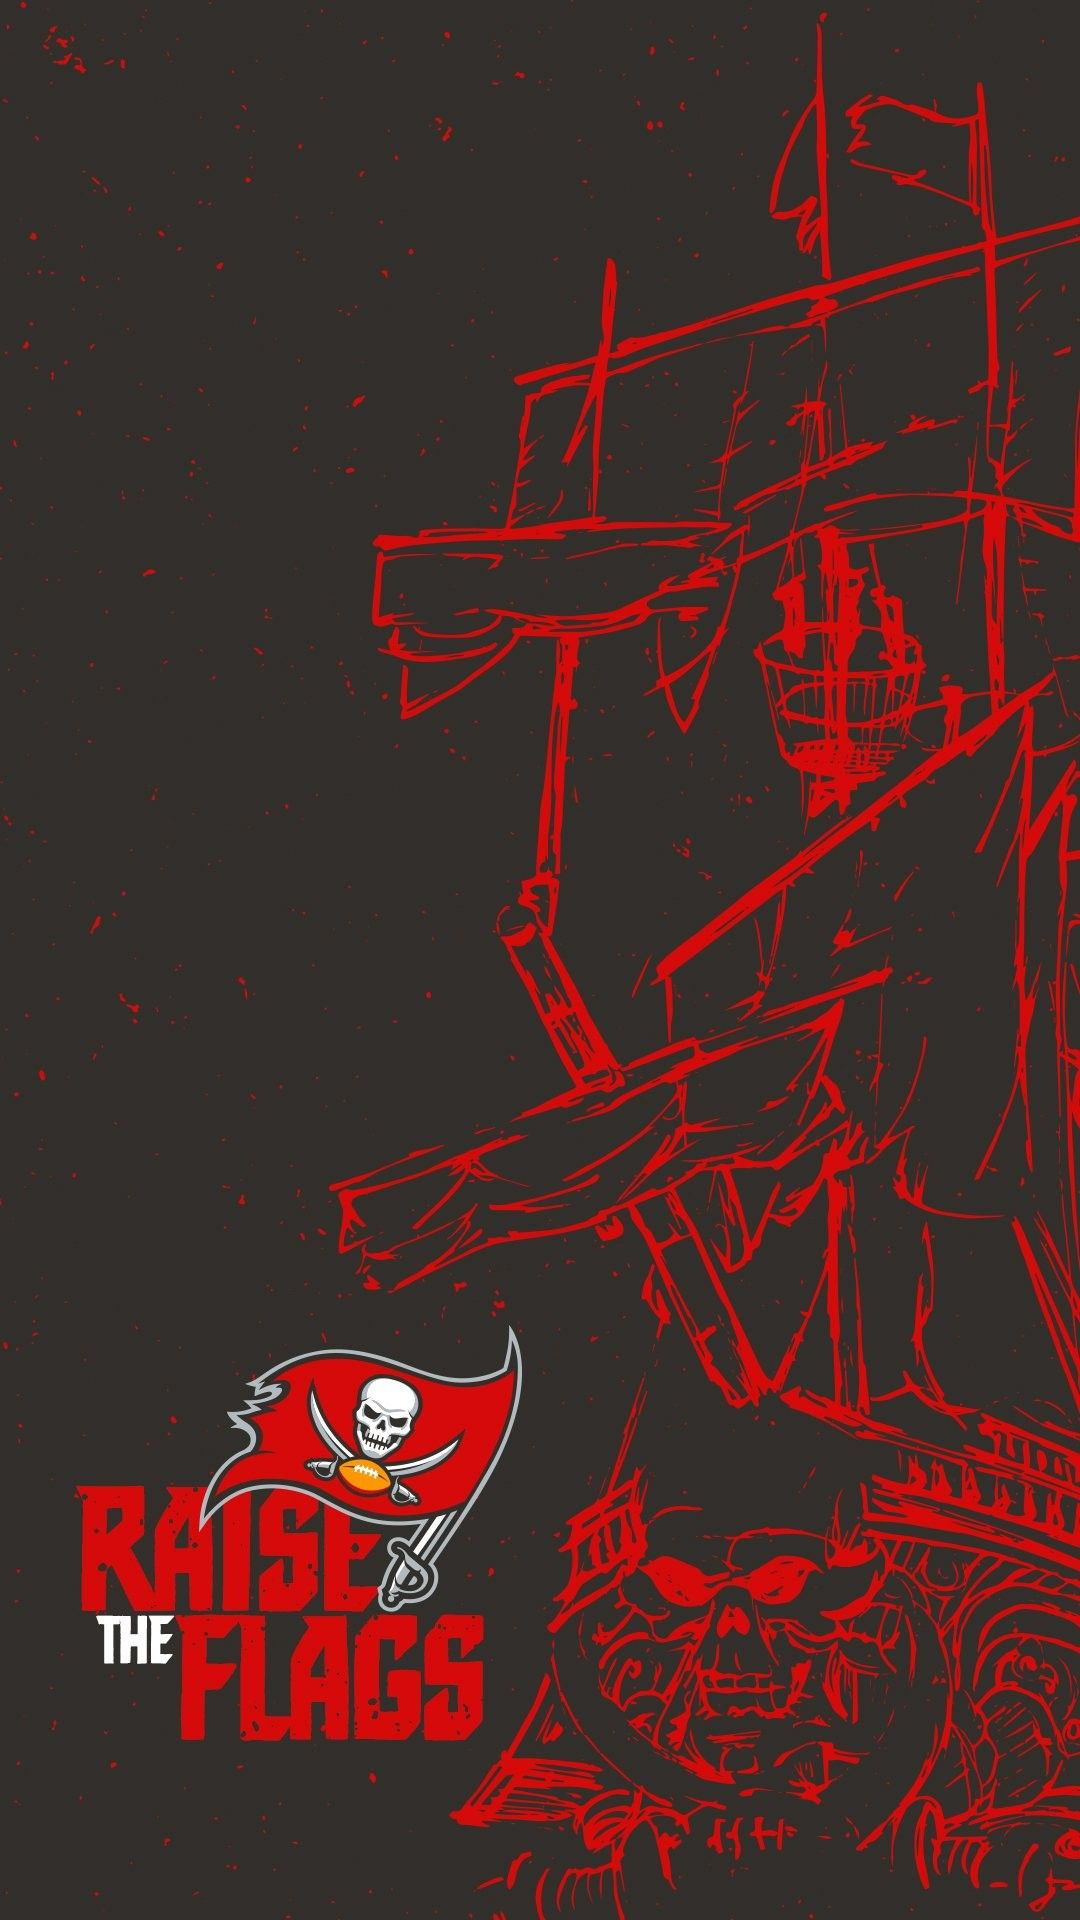 Pin by Chris on NFL Tampa bay buccaneers